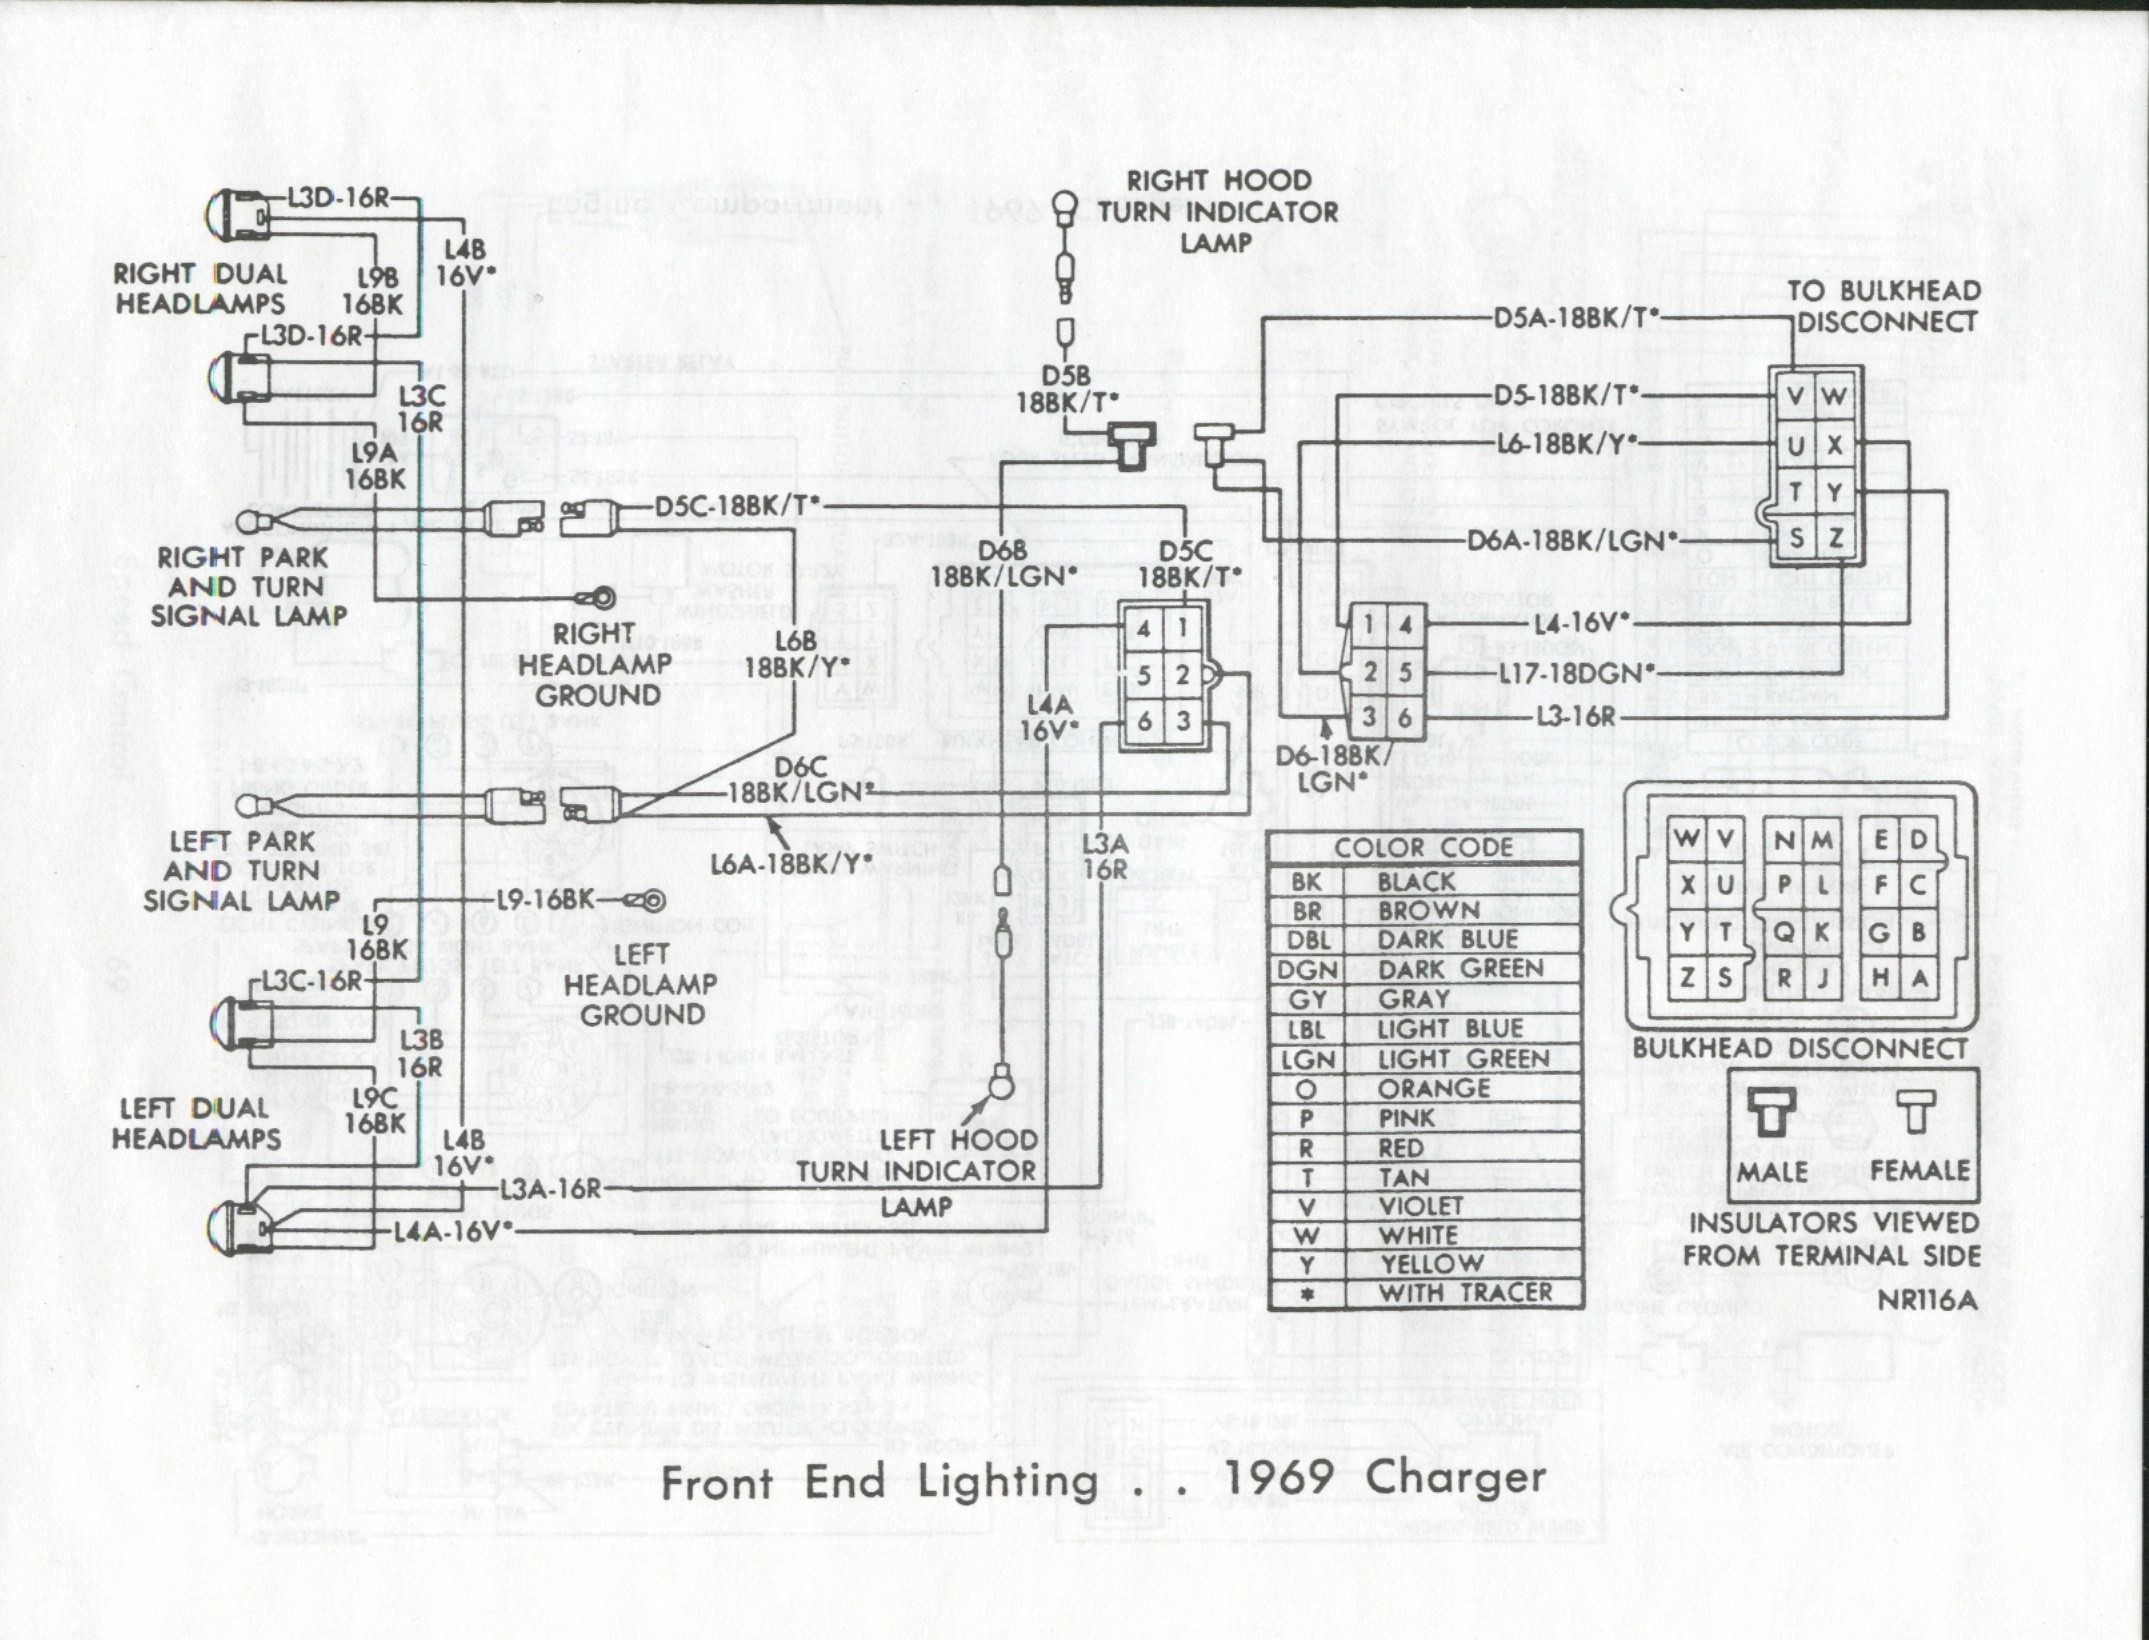 68 Charger Wiring Diagram Wiring Diagram For Dodge Ram 1500 Radio For Wiring Diagram Schematics